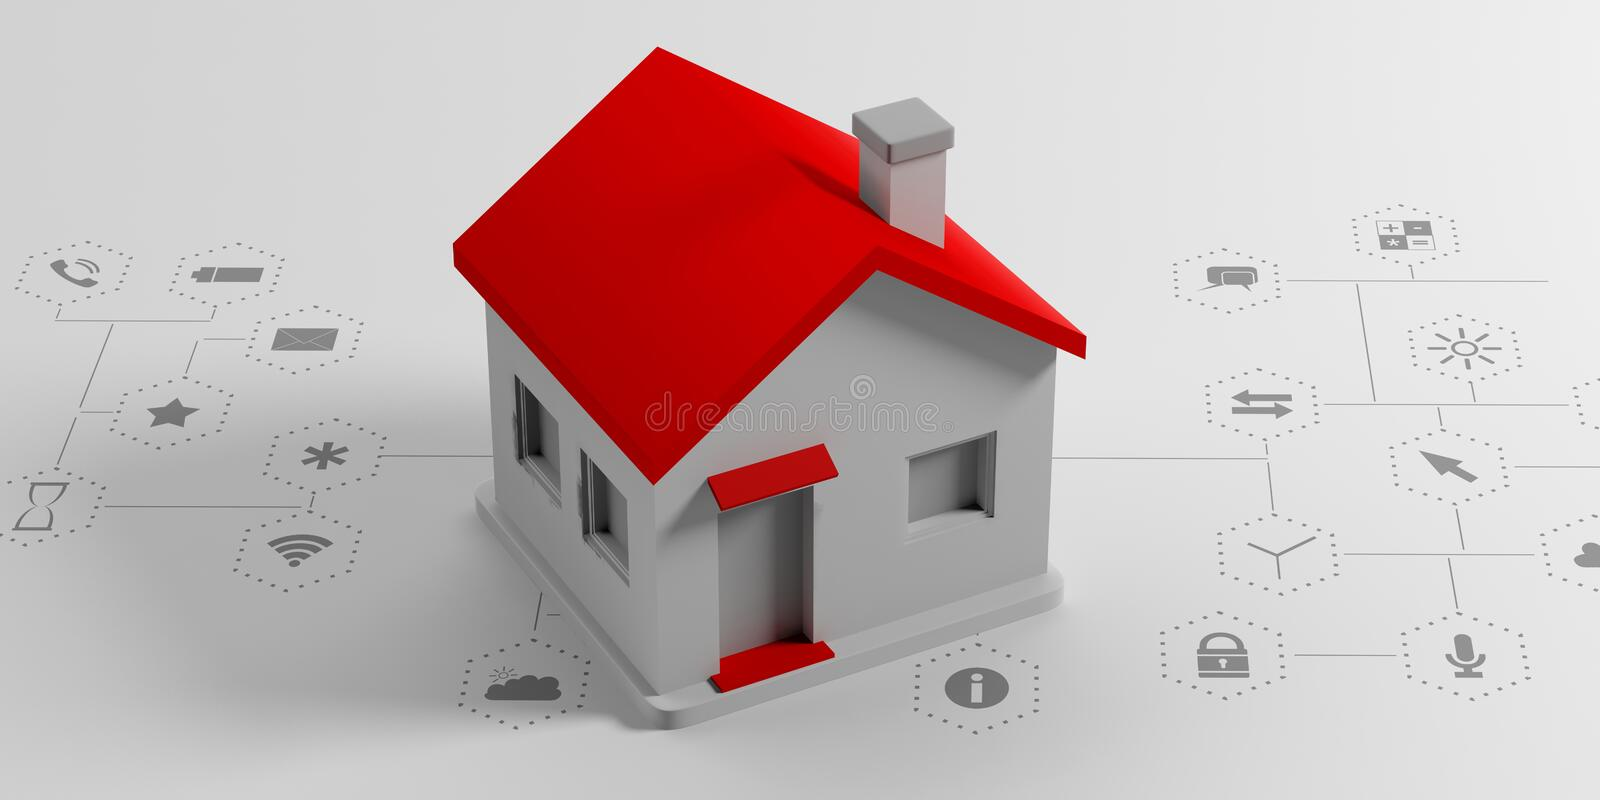 IOT, smart home concept. Small house on white background with apps signs. 3d illustration vector illustration